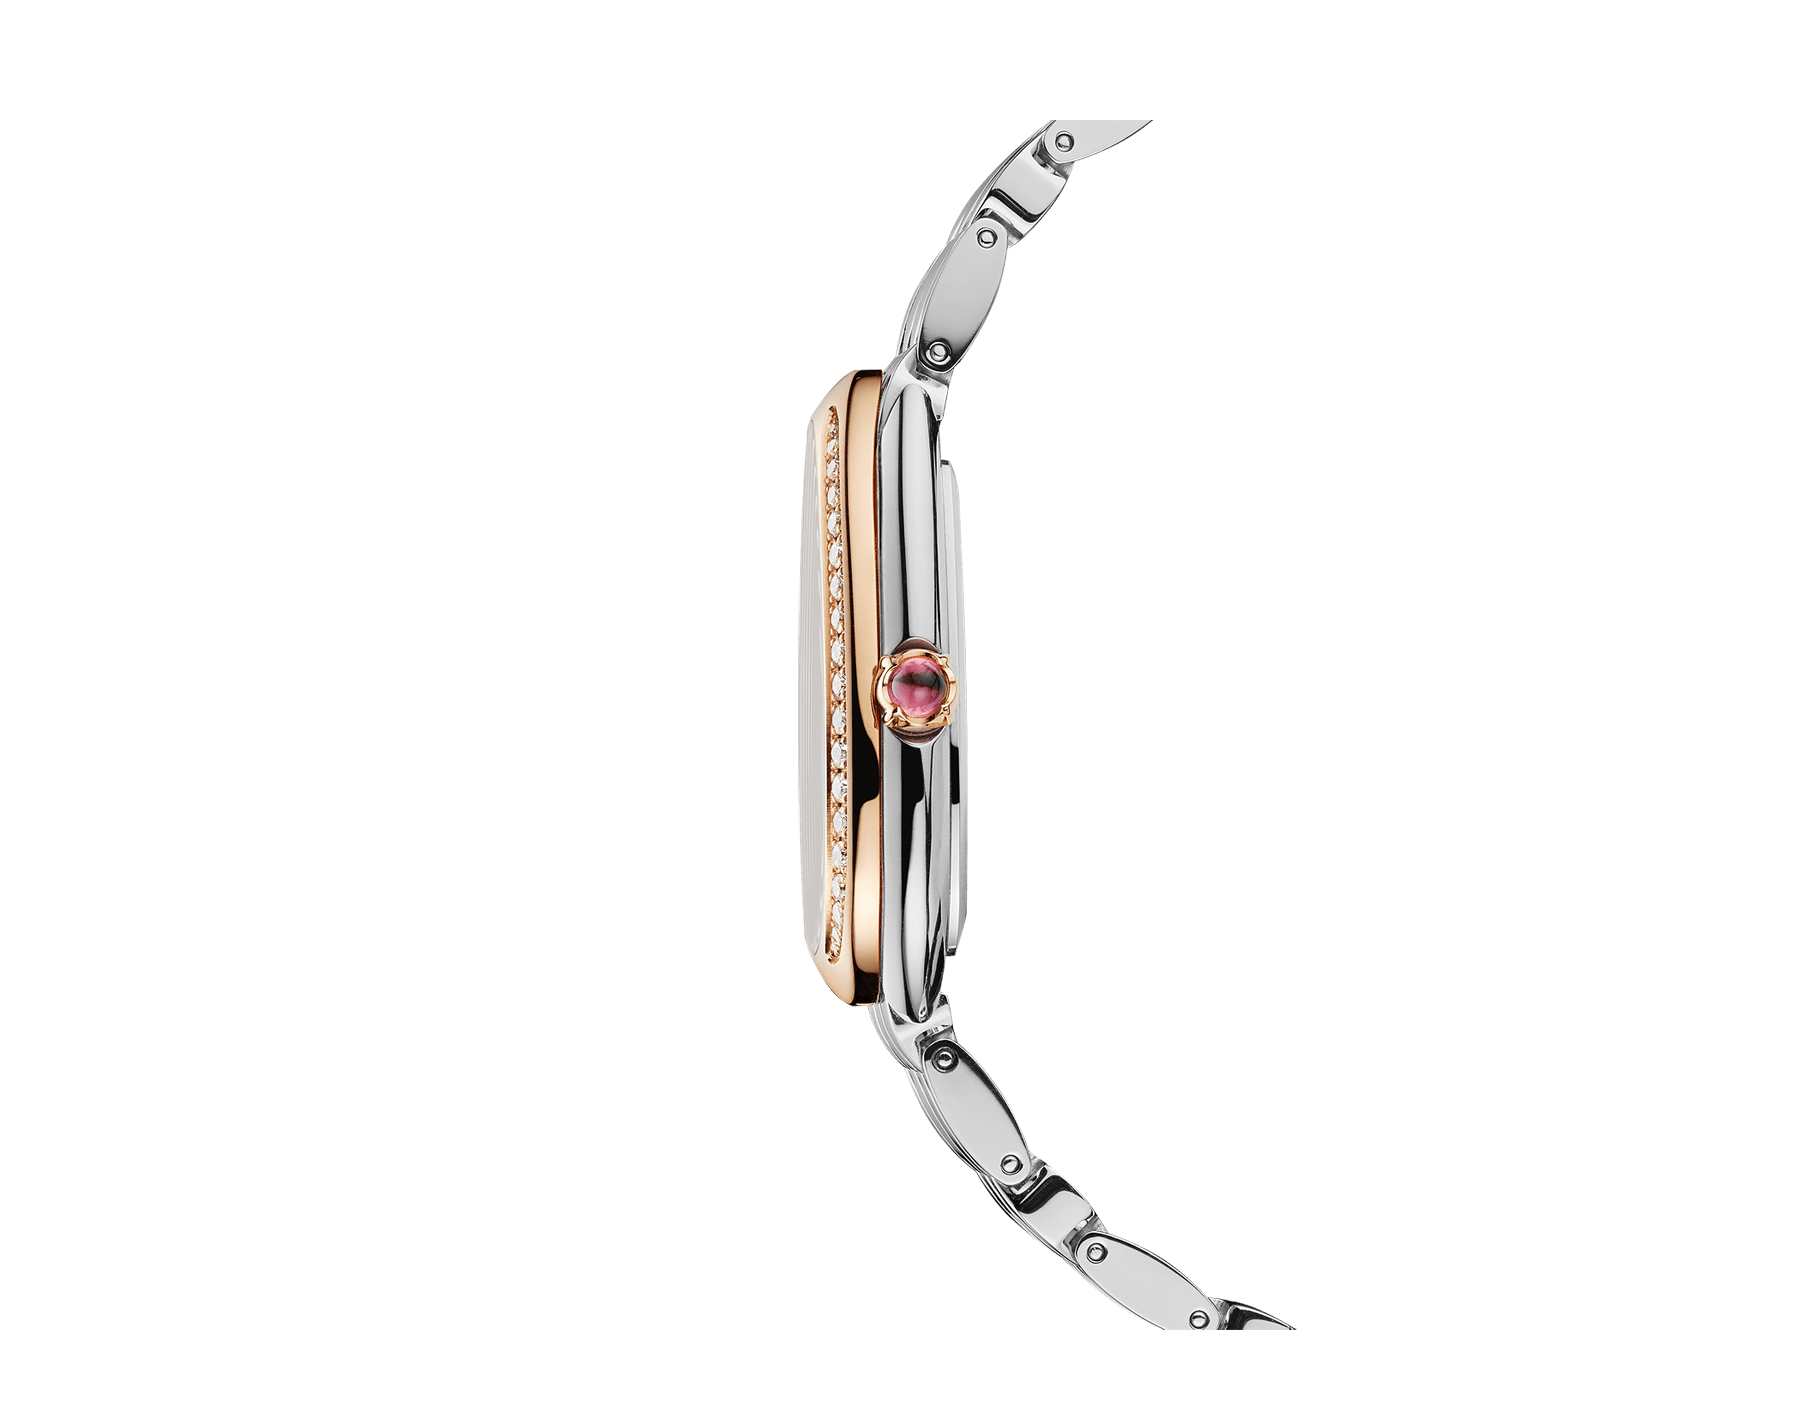 Serpenti Seduttori watch with stainless steel case, stainless steel bracelet, 18 kt rose gold bezel set with diamonds and a white silver opaline dial. 103143 image 3